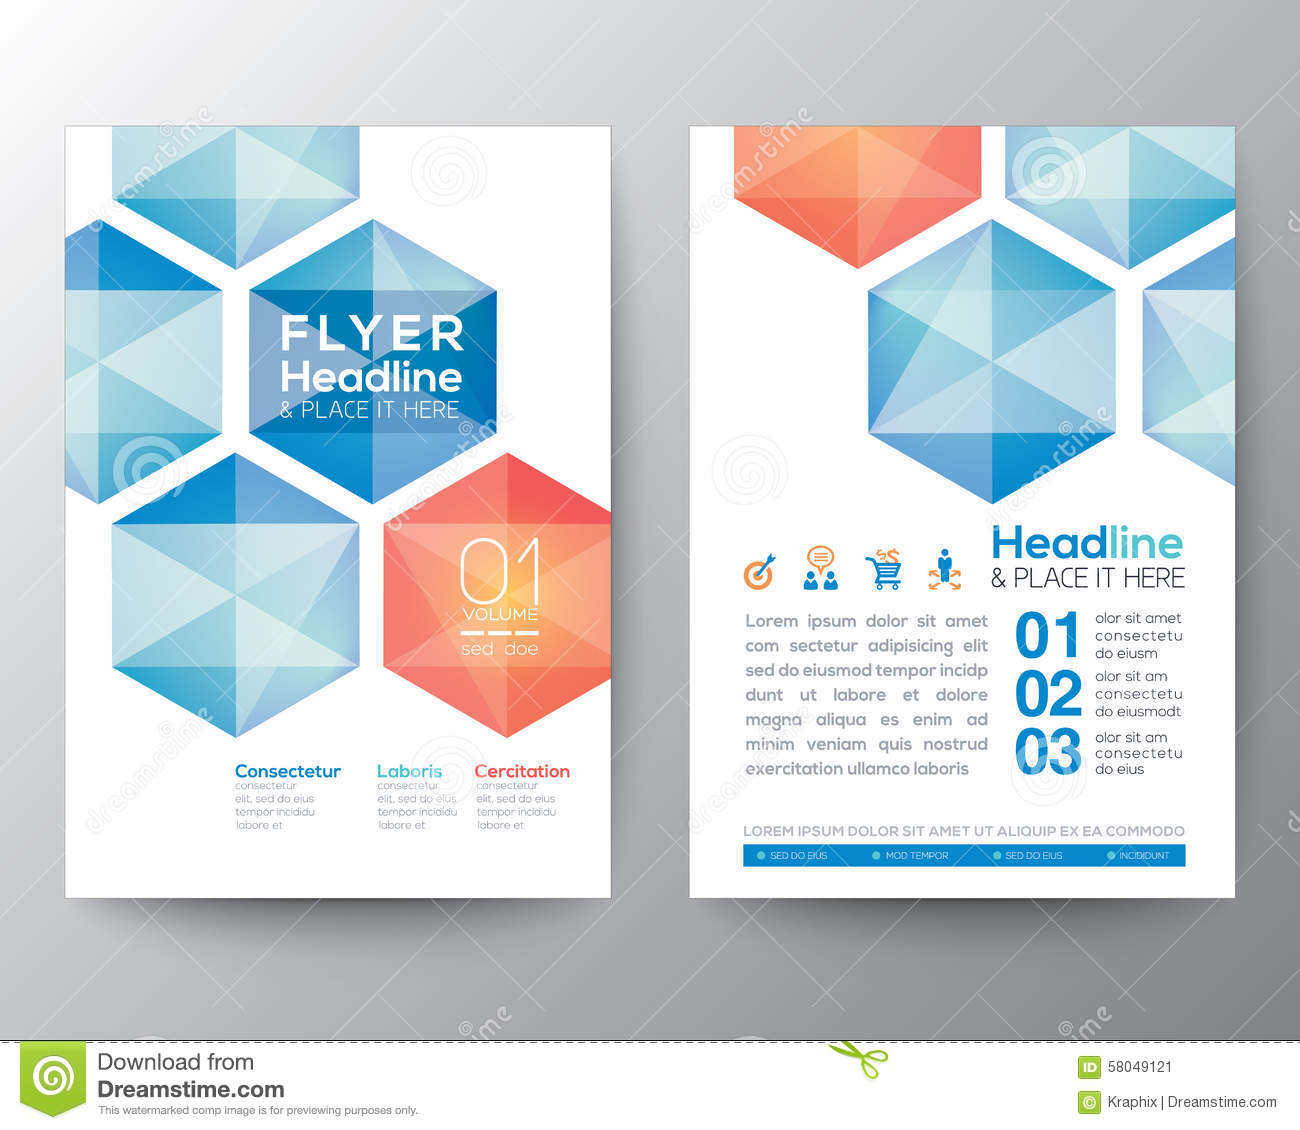 Interior Design Courses From Home Abstract Hexagon Poster Brochure Flyer Design Template